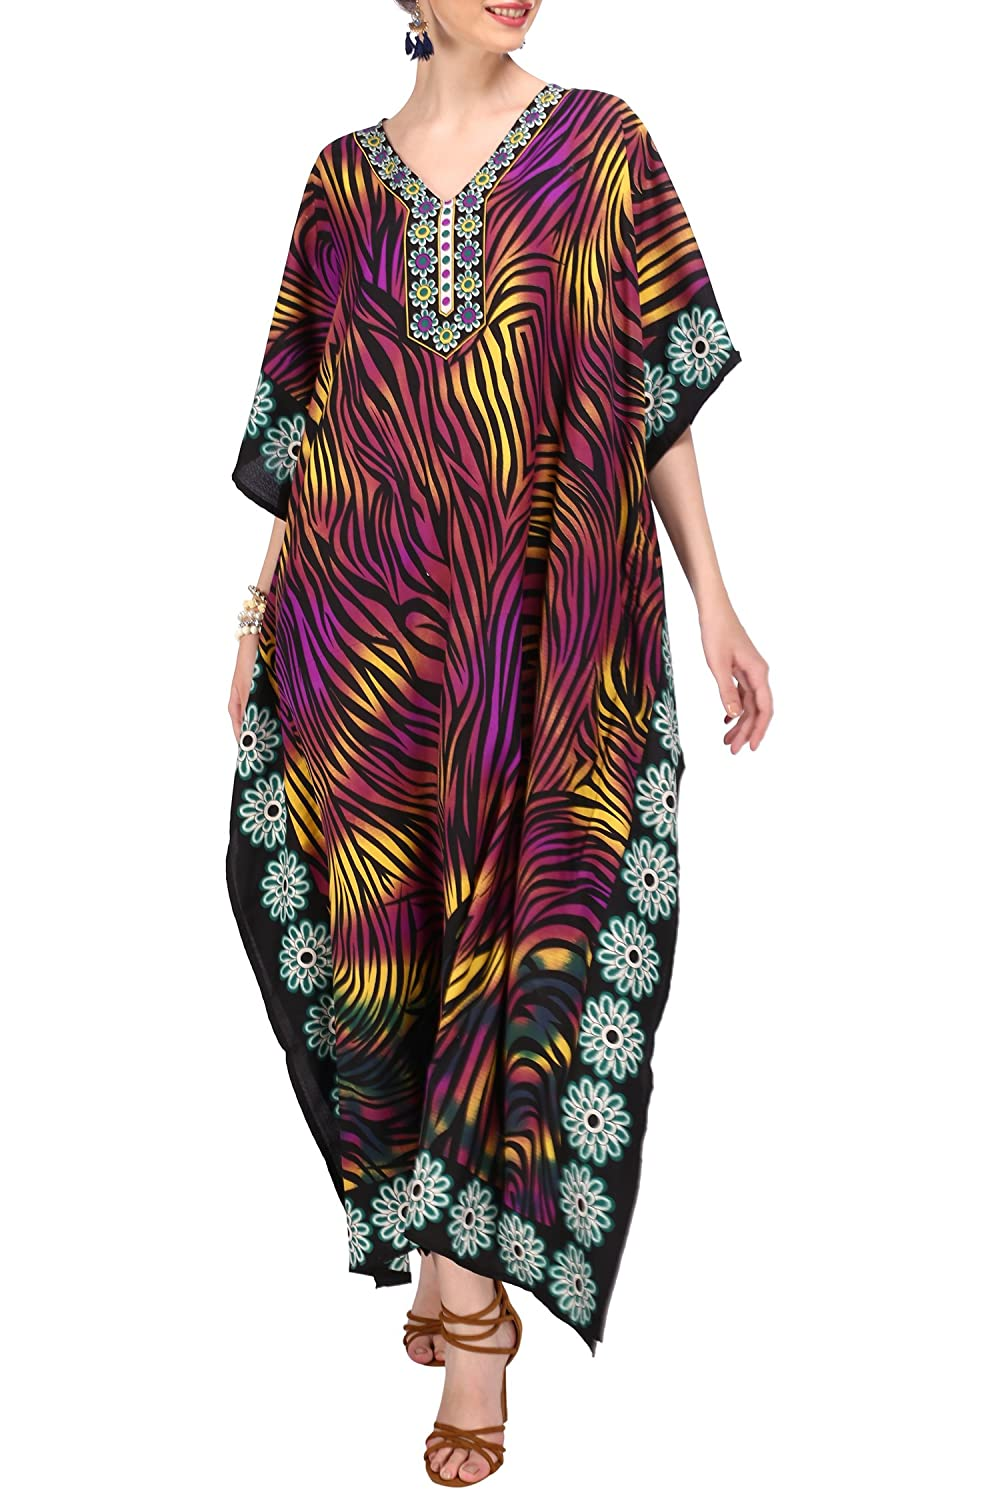 Kaftan Tunic Kimono Dress Ladies Summer Women Evening Maxi Party Plus Size 6-24